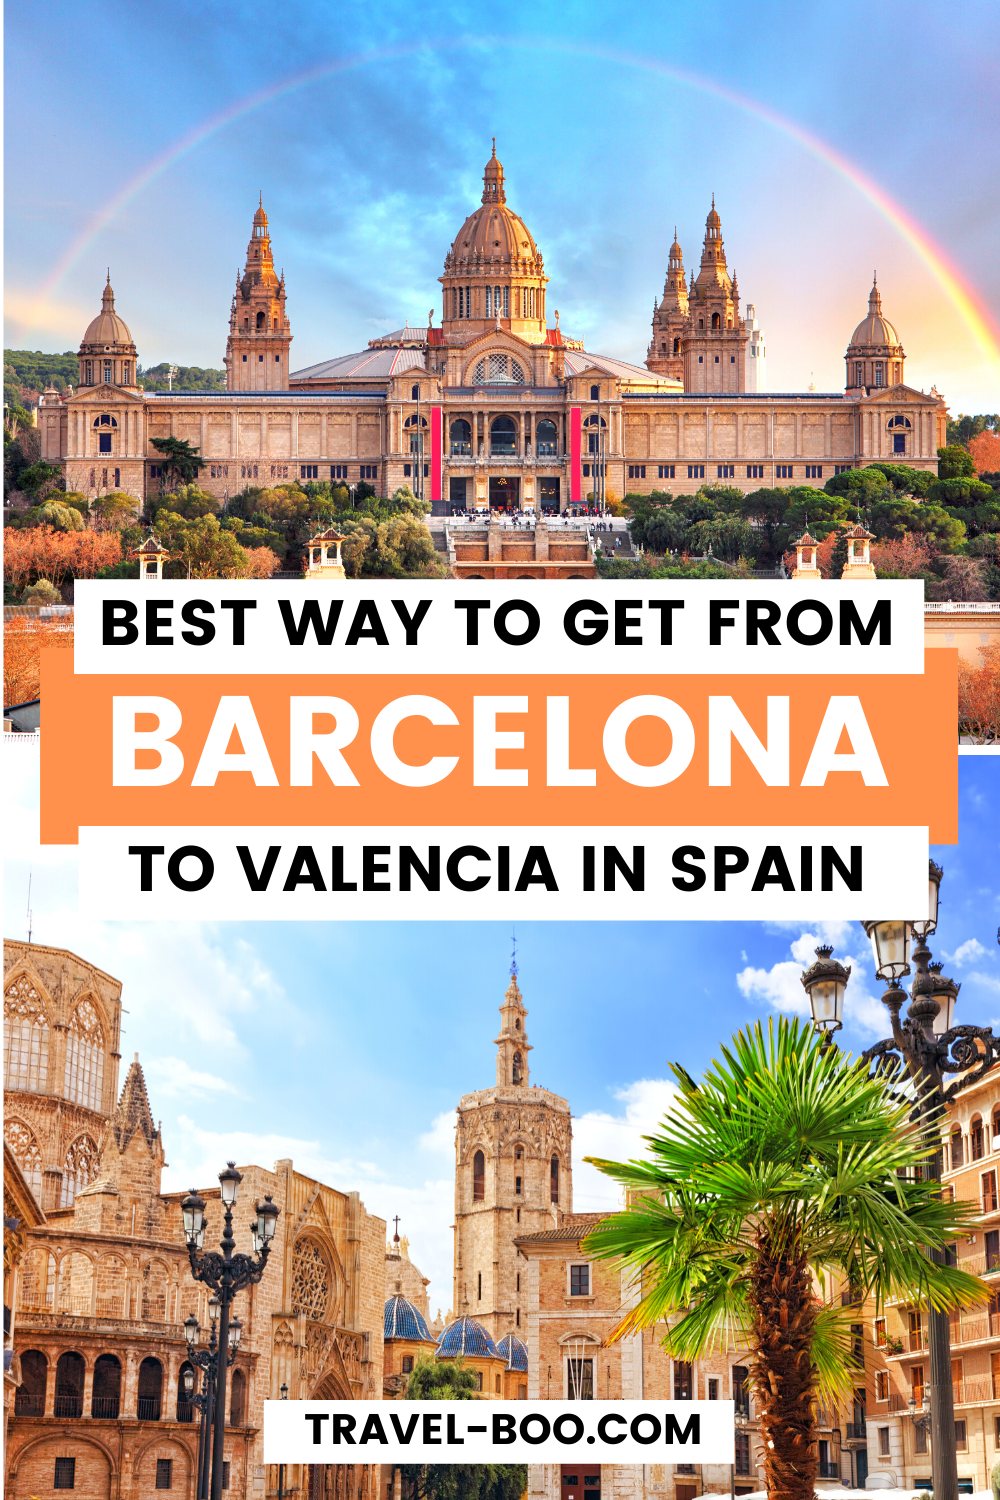 , The Best Ways To Get From Barcelona To Valencia In Spain! Spain Travel Guide, My Travels Blog 2020, My Travels Blog 2020